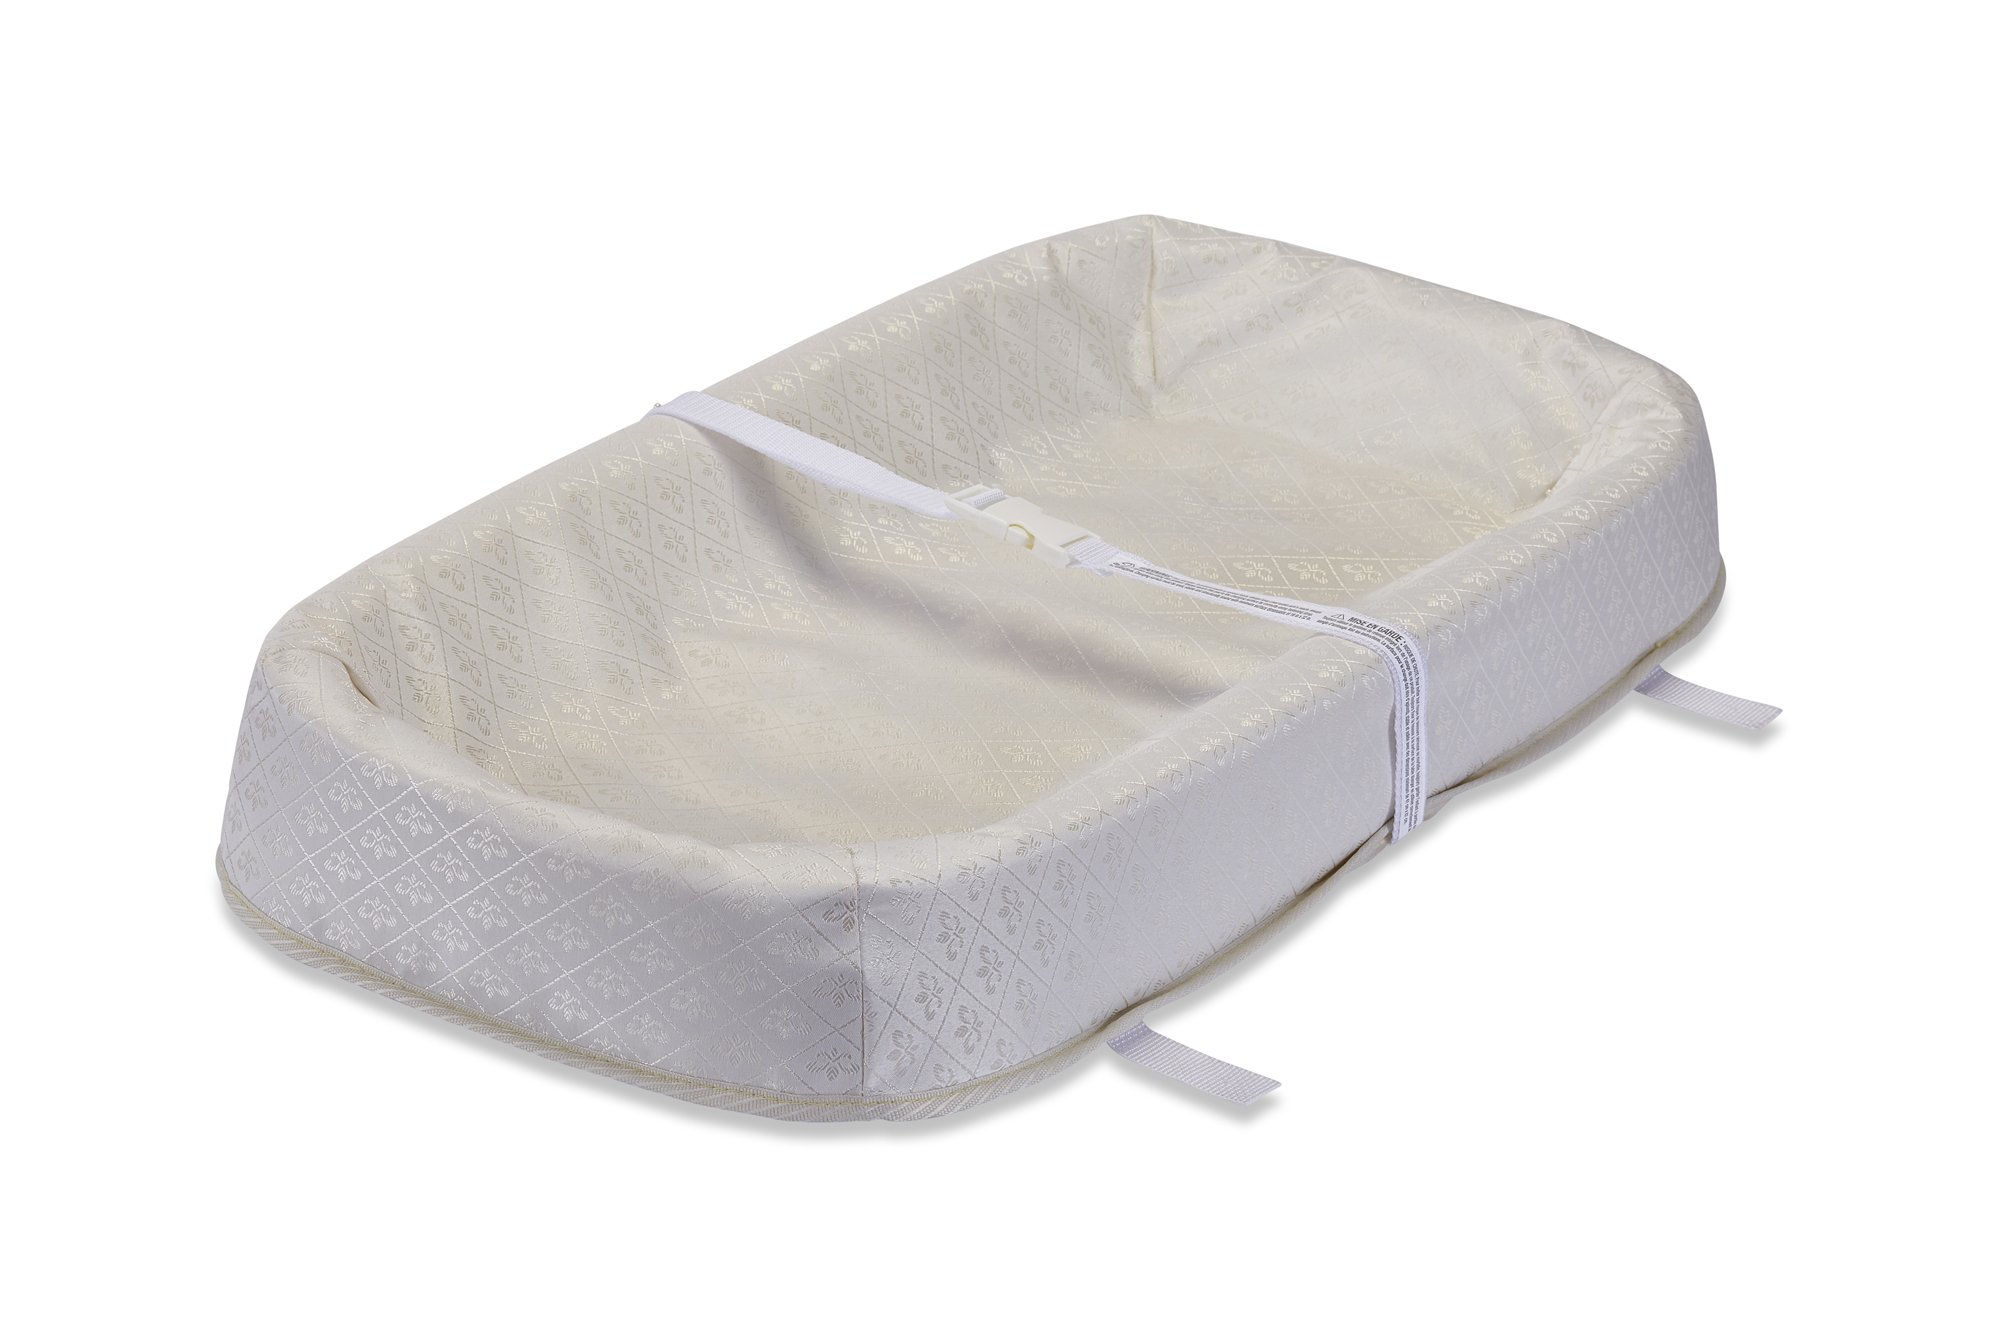 LA Baby 4 Sided Changing Pad with Organic Layer, 32'' - Made in USA. Easy to Clean Waterproof Cover w/Non-Skid Bottom, Safety Strap, Fits All Standard Changing Tables for Best Infant Diaper Change by L.A. Baby